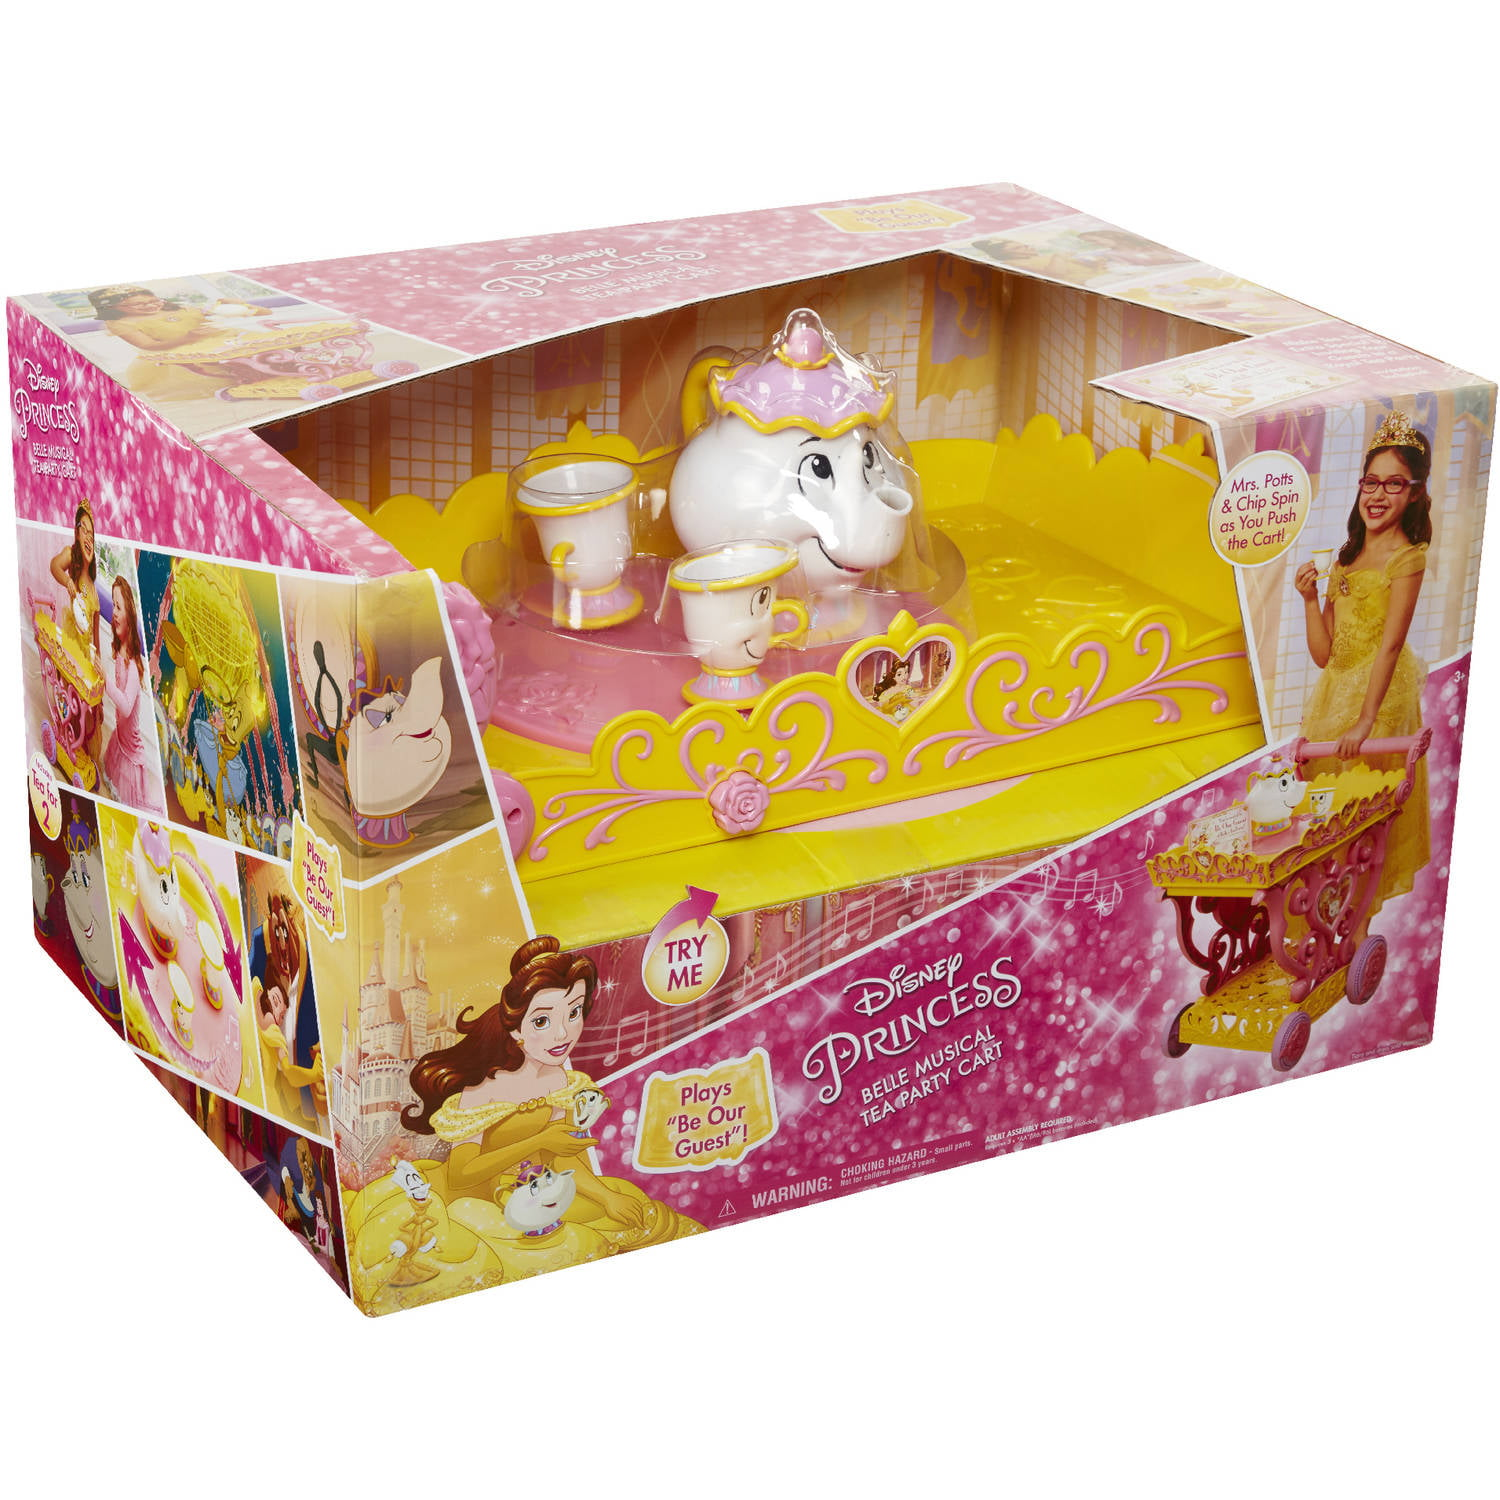 Beauty and the beast belles bedroom - Beauty And The Beast Belles Bedroom 42